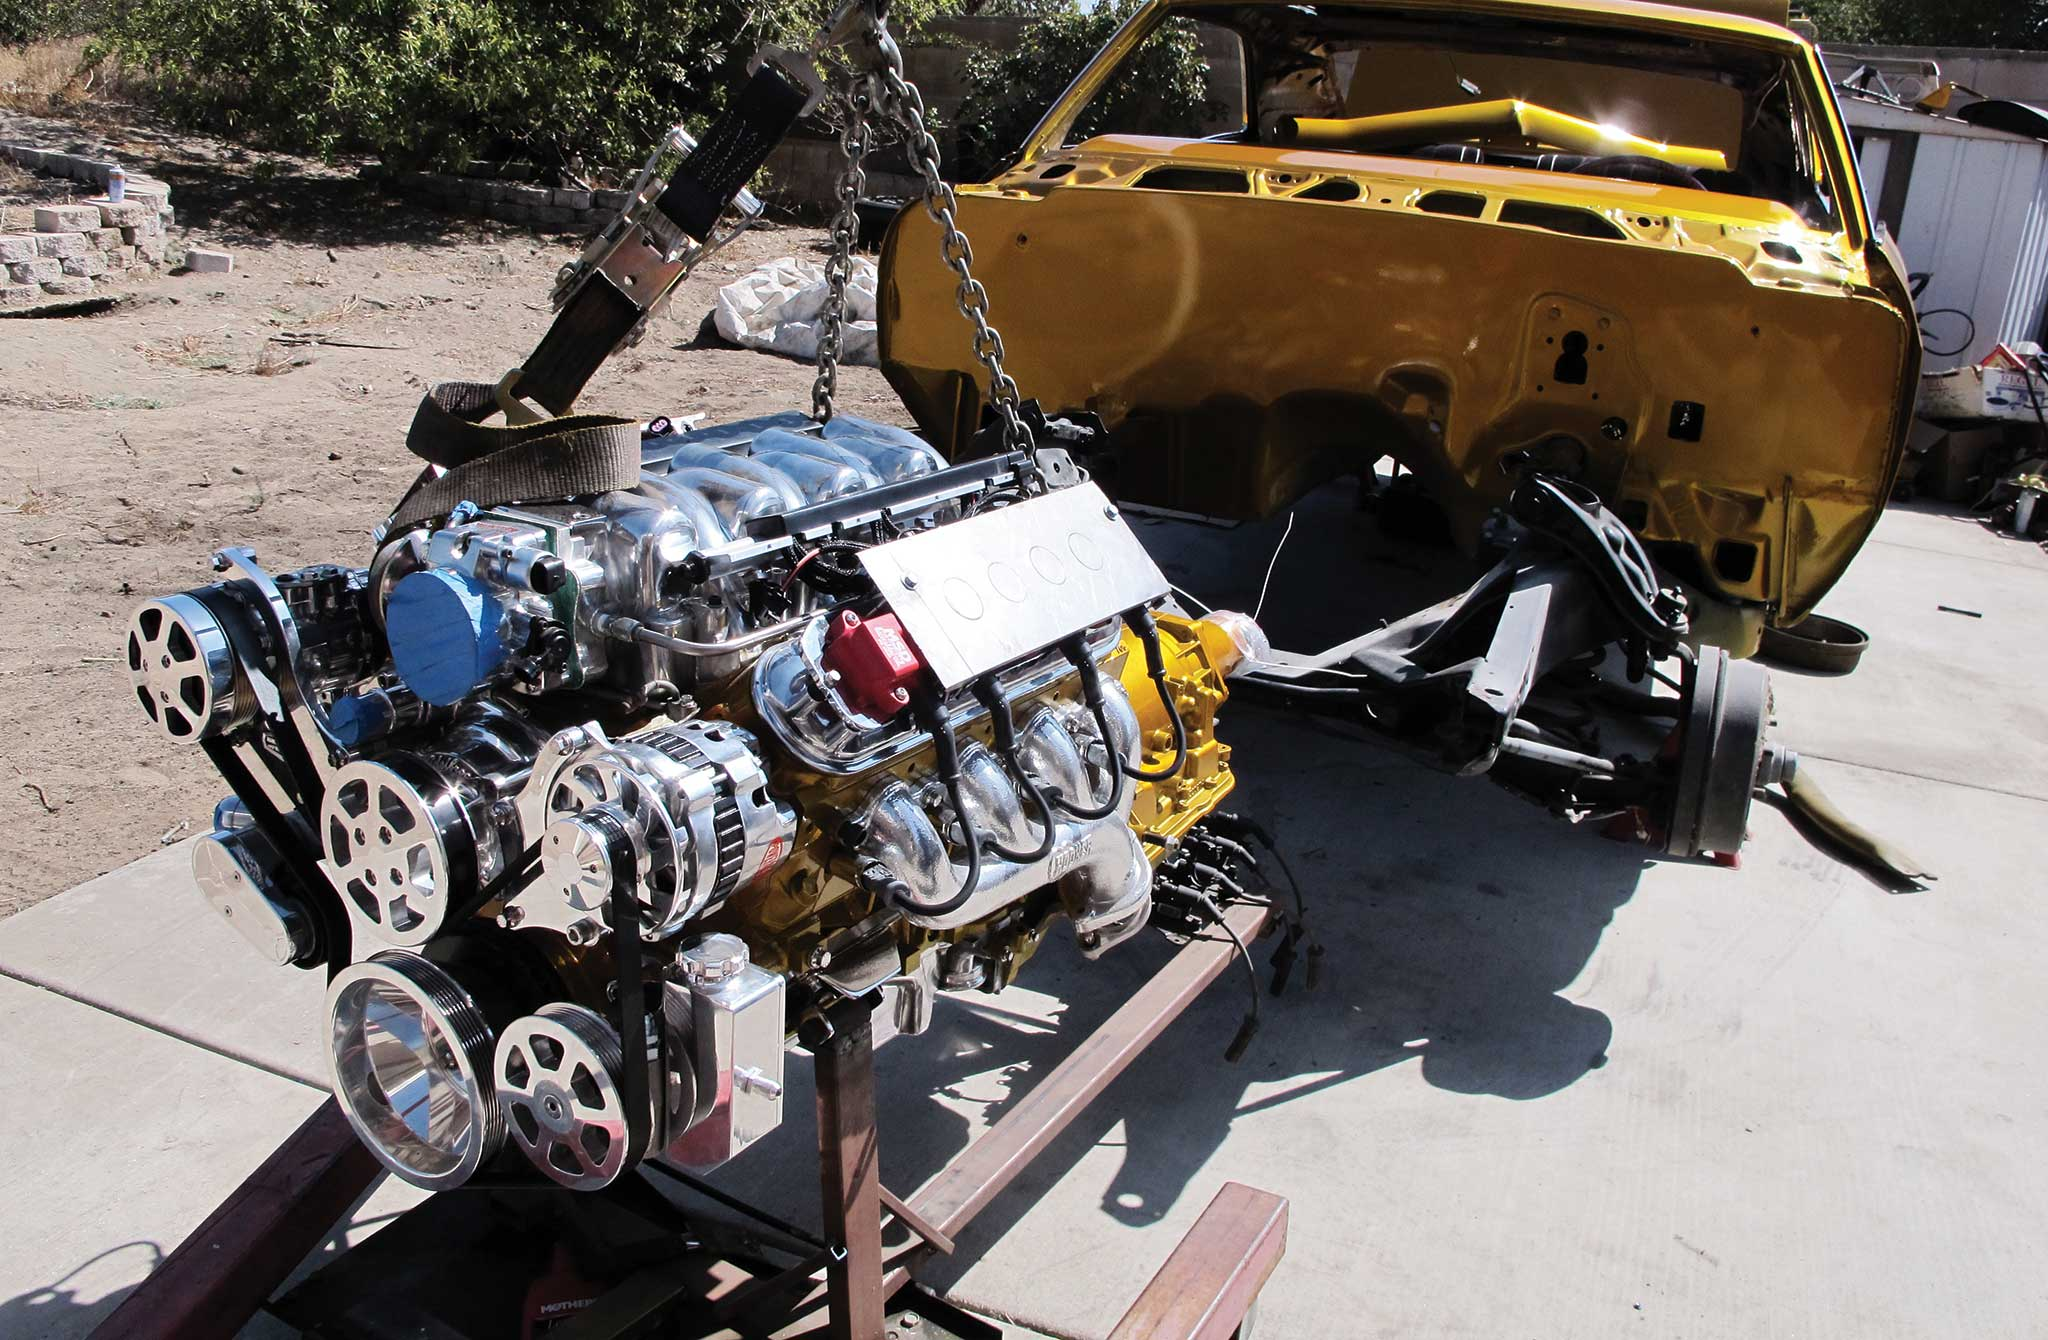 014 building an ls1 into a show engine engine mockup